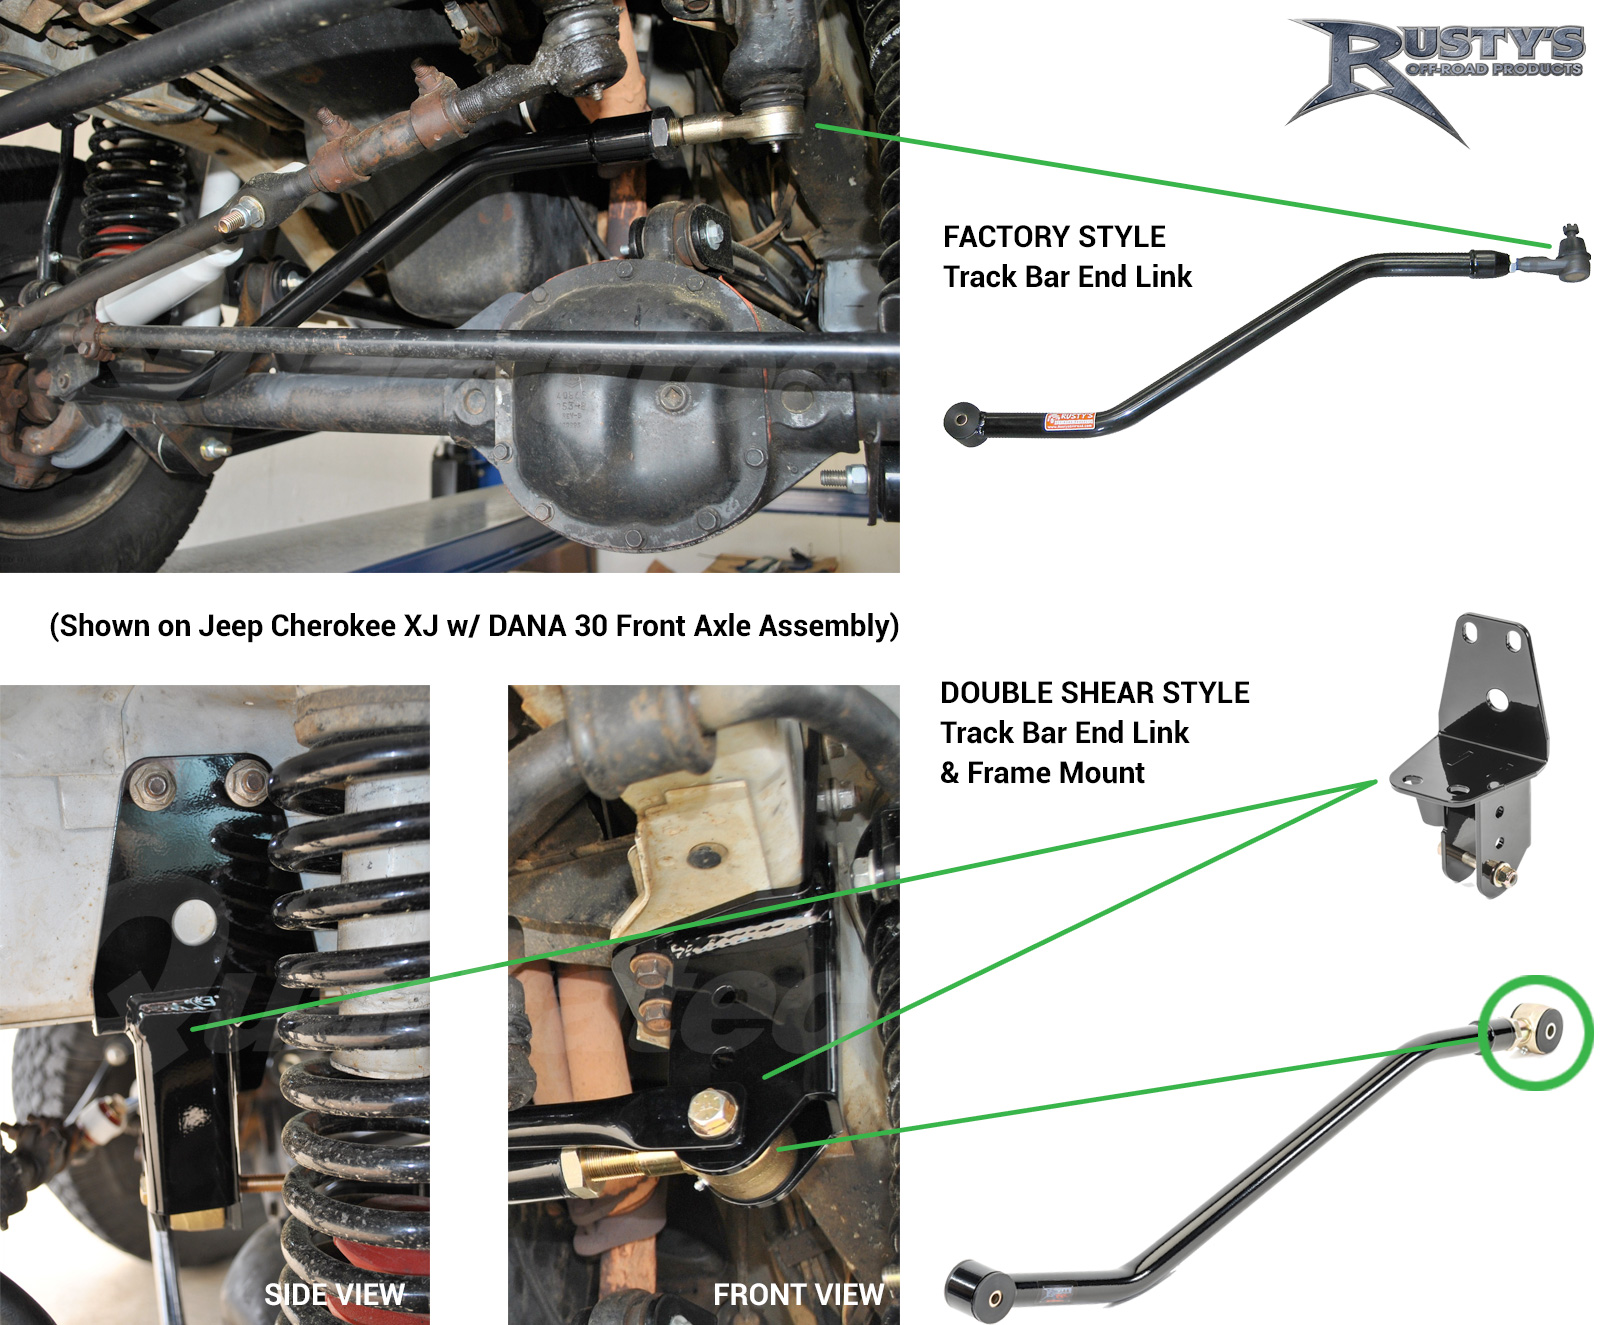 hight resolution of no matter which style track bar you choose remember this a tuned suspension is a happy suspension keep your track bar properly adjusted